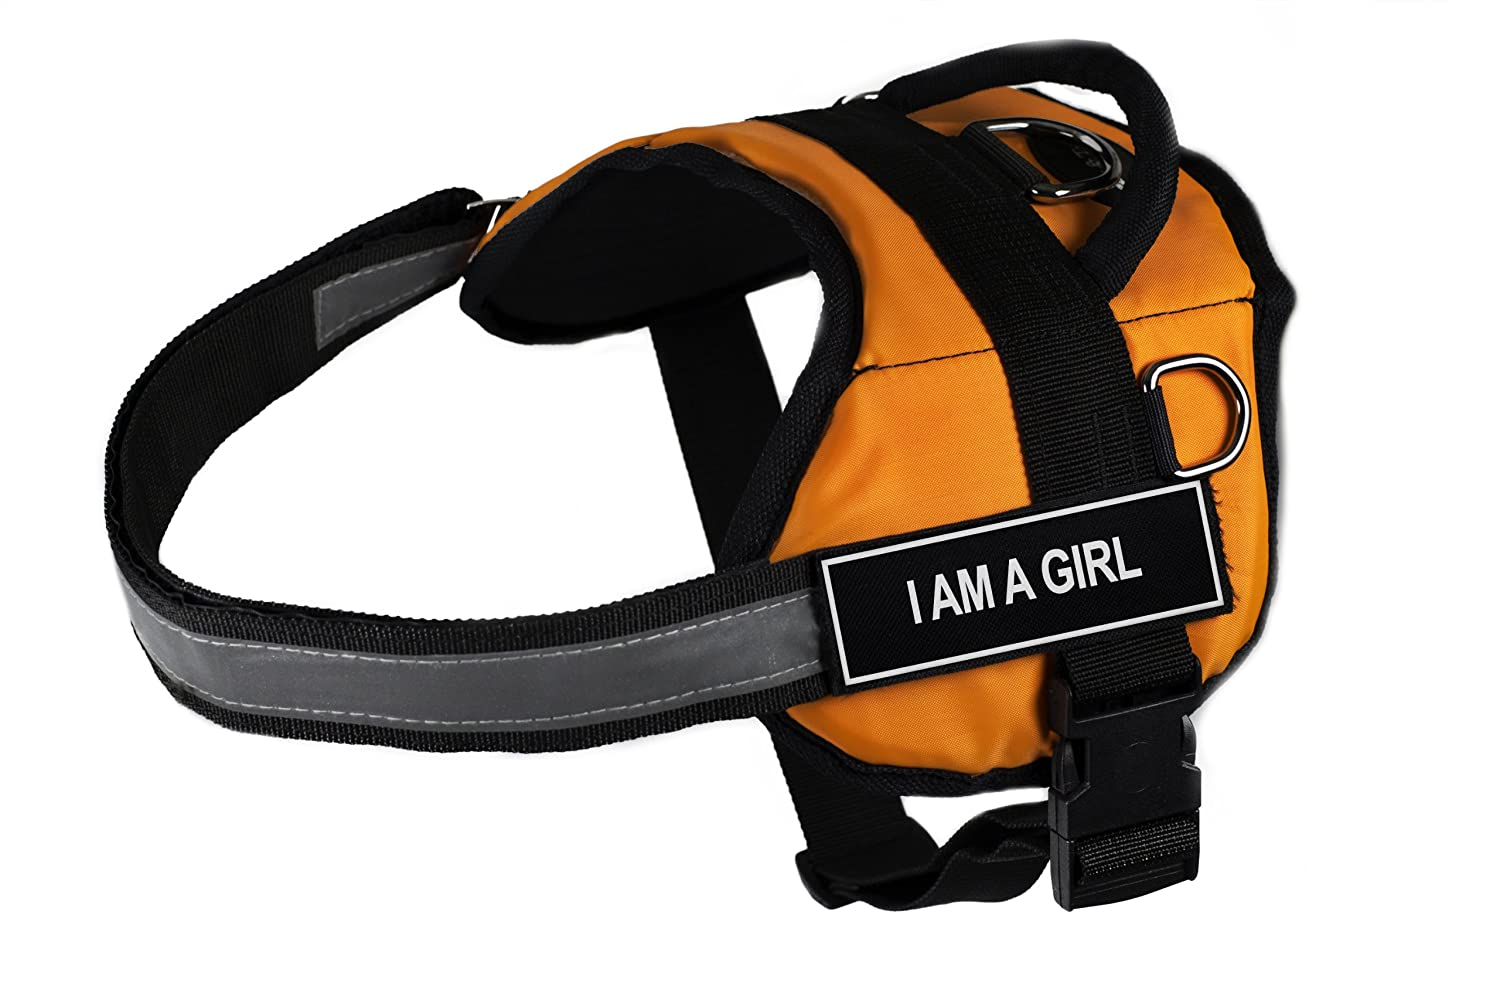 Dean & Tyler DT Works Fun Harness I Am A Girl Pet Harness, Large, Fits Girth Size 34-Inch to 47-Inch, orange Black